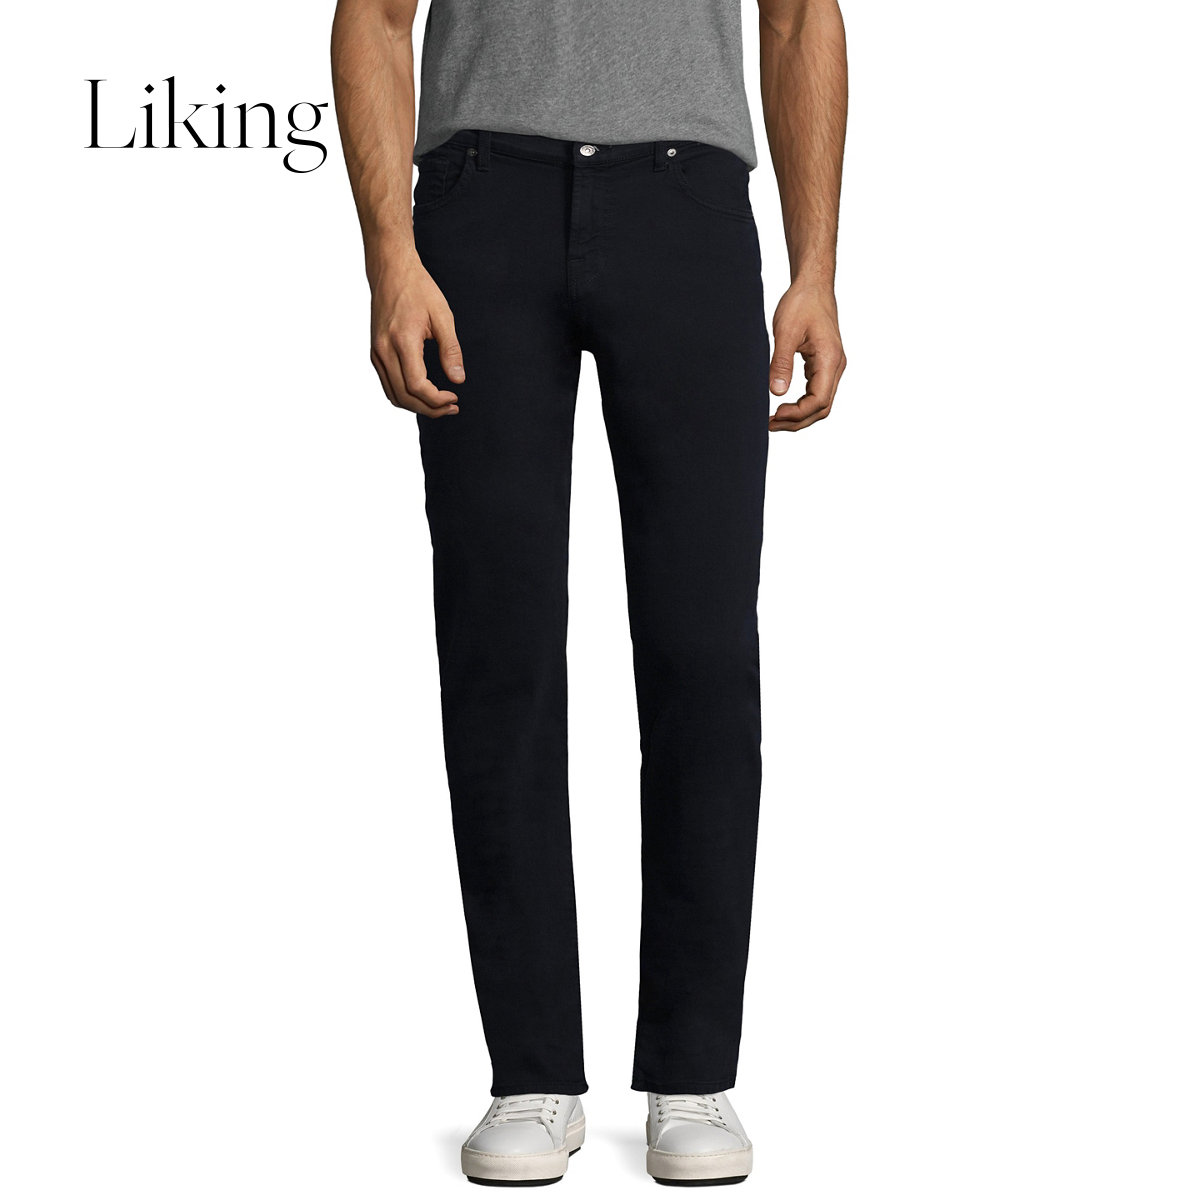 7 for all mankind Sven Foomand Men's Jeans